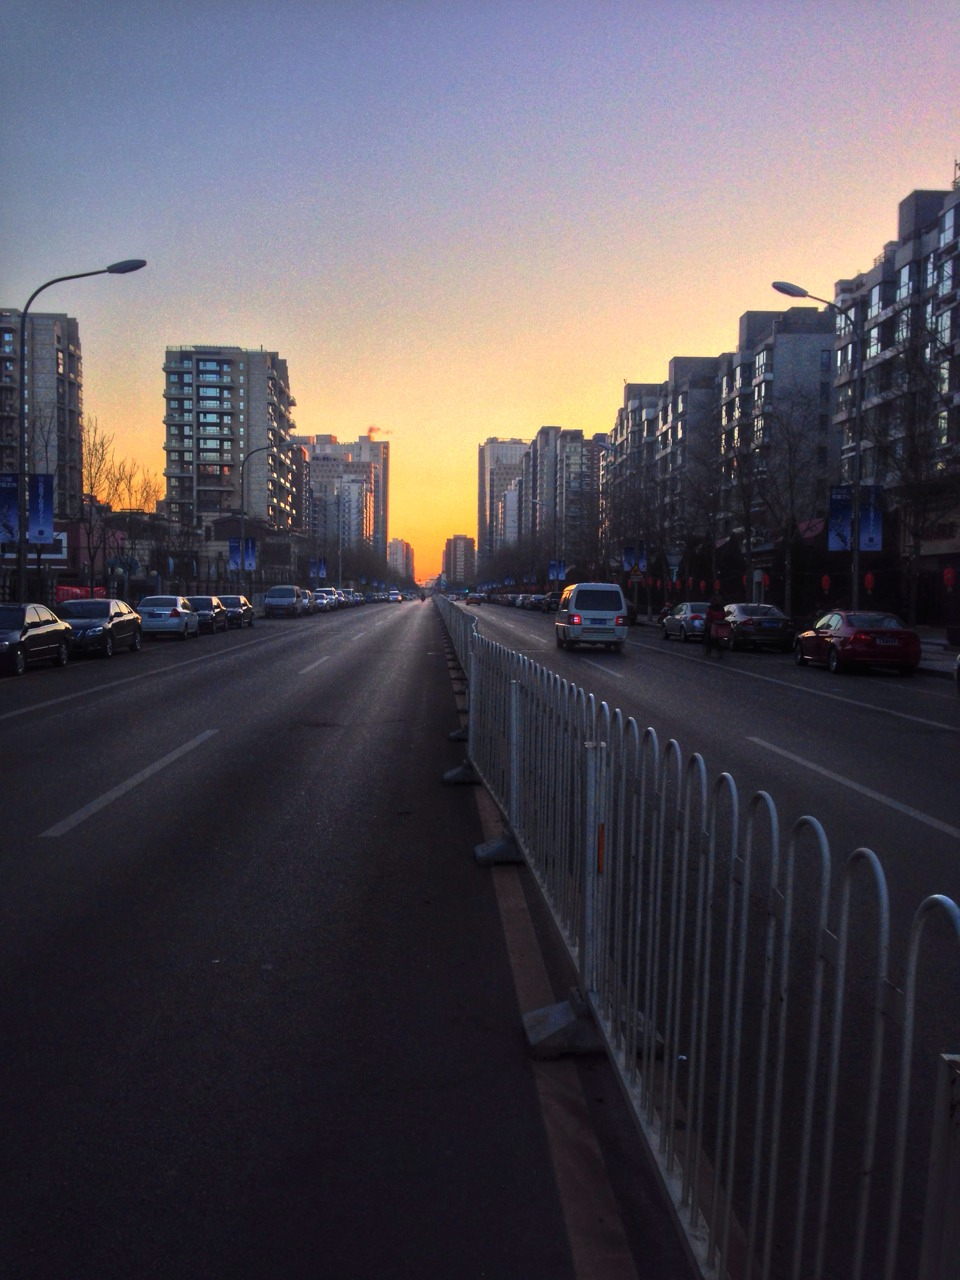 Sunday morning in Beijing